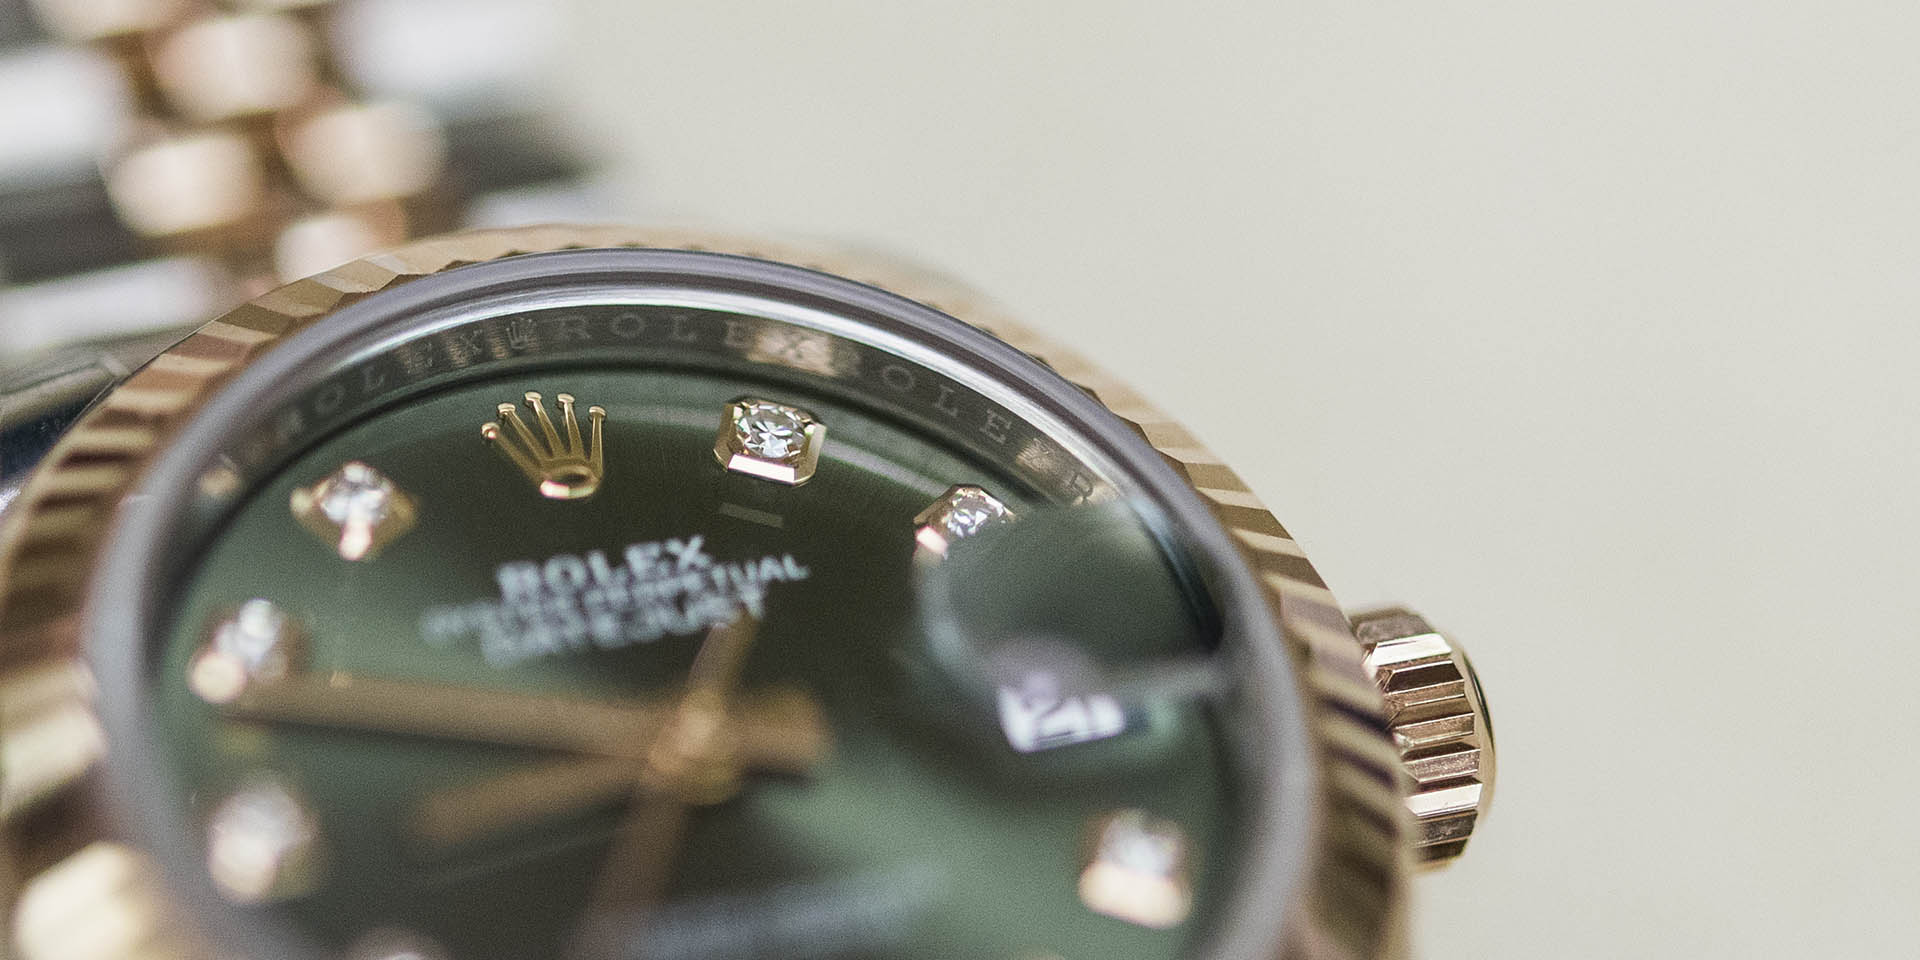 rolex-oyster-perpetual-datejust-6-.jpg